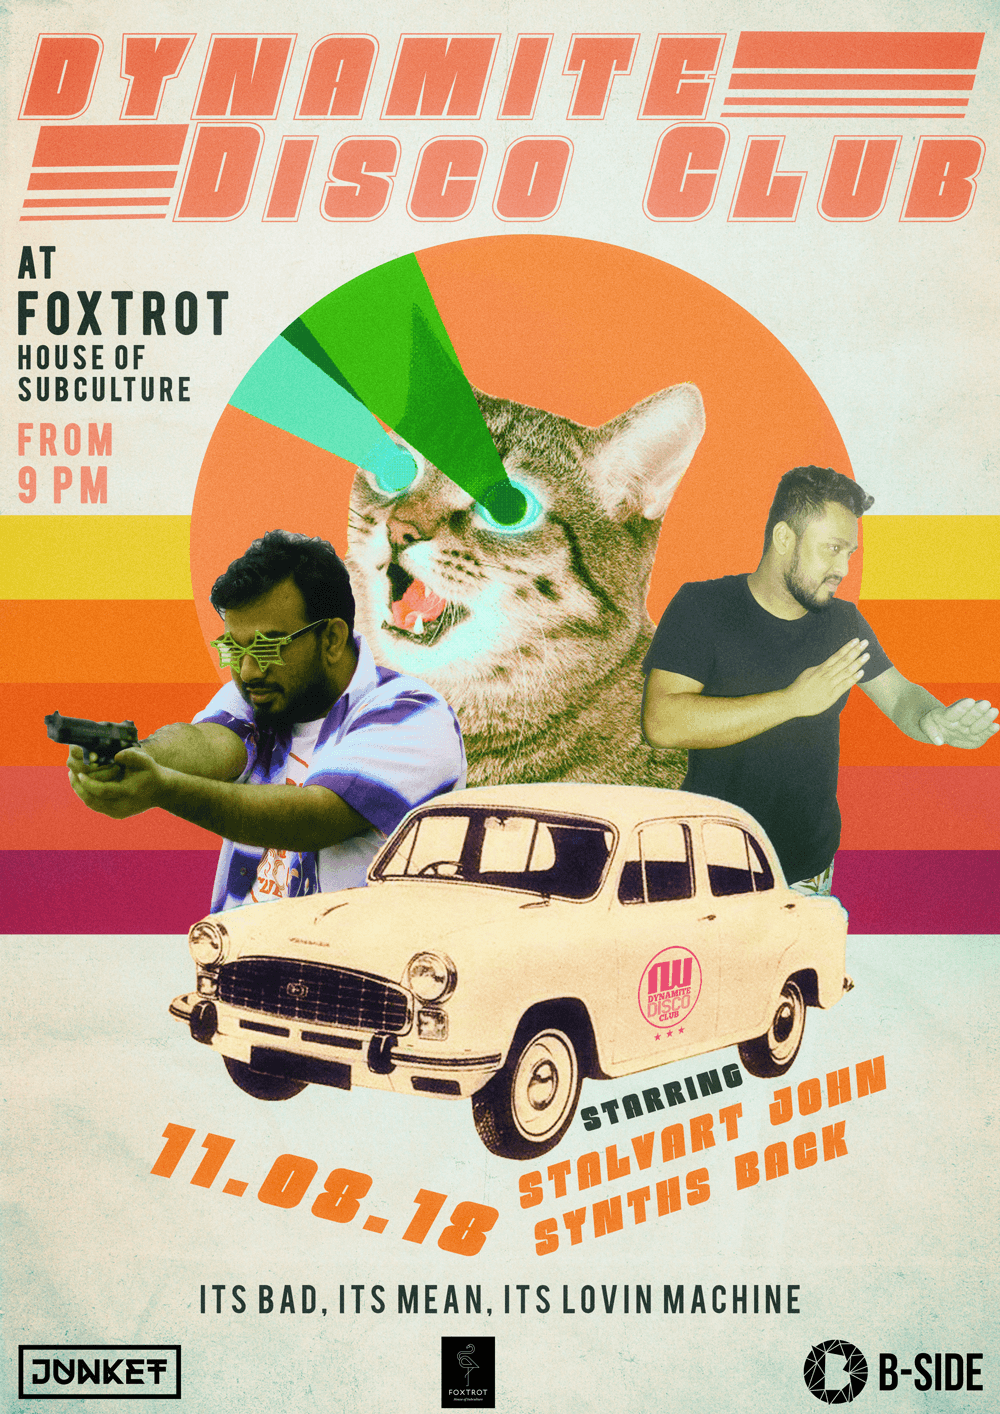 Dynamite Disco Club - Foxtrot